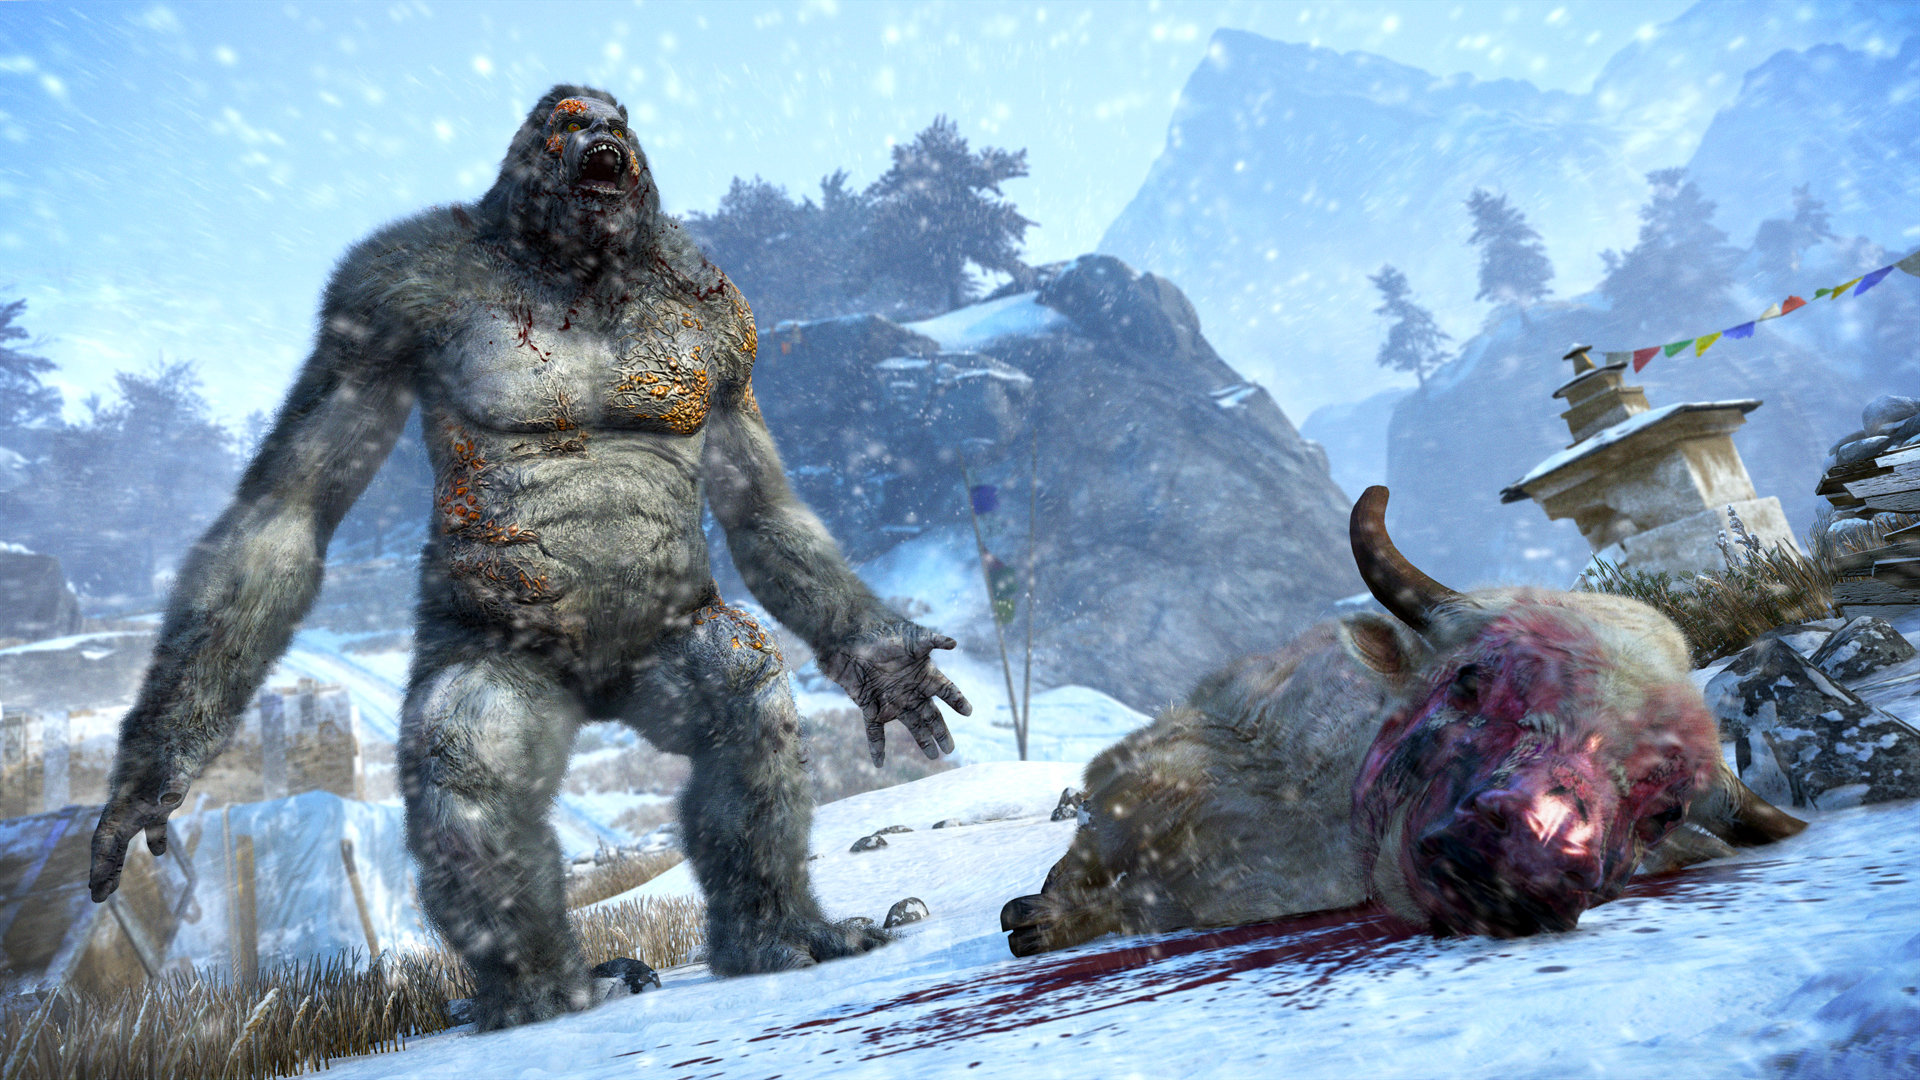 Download 1080p Far Cry 4 Desktop Wallpaper Id10770 For Free